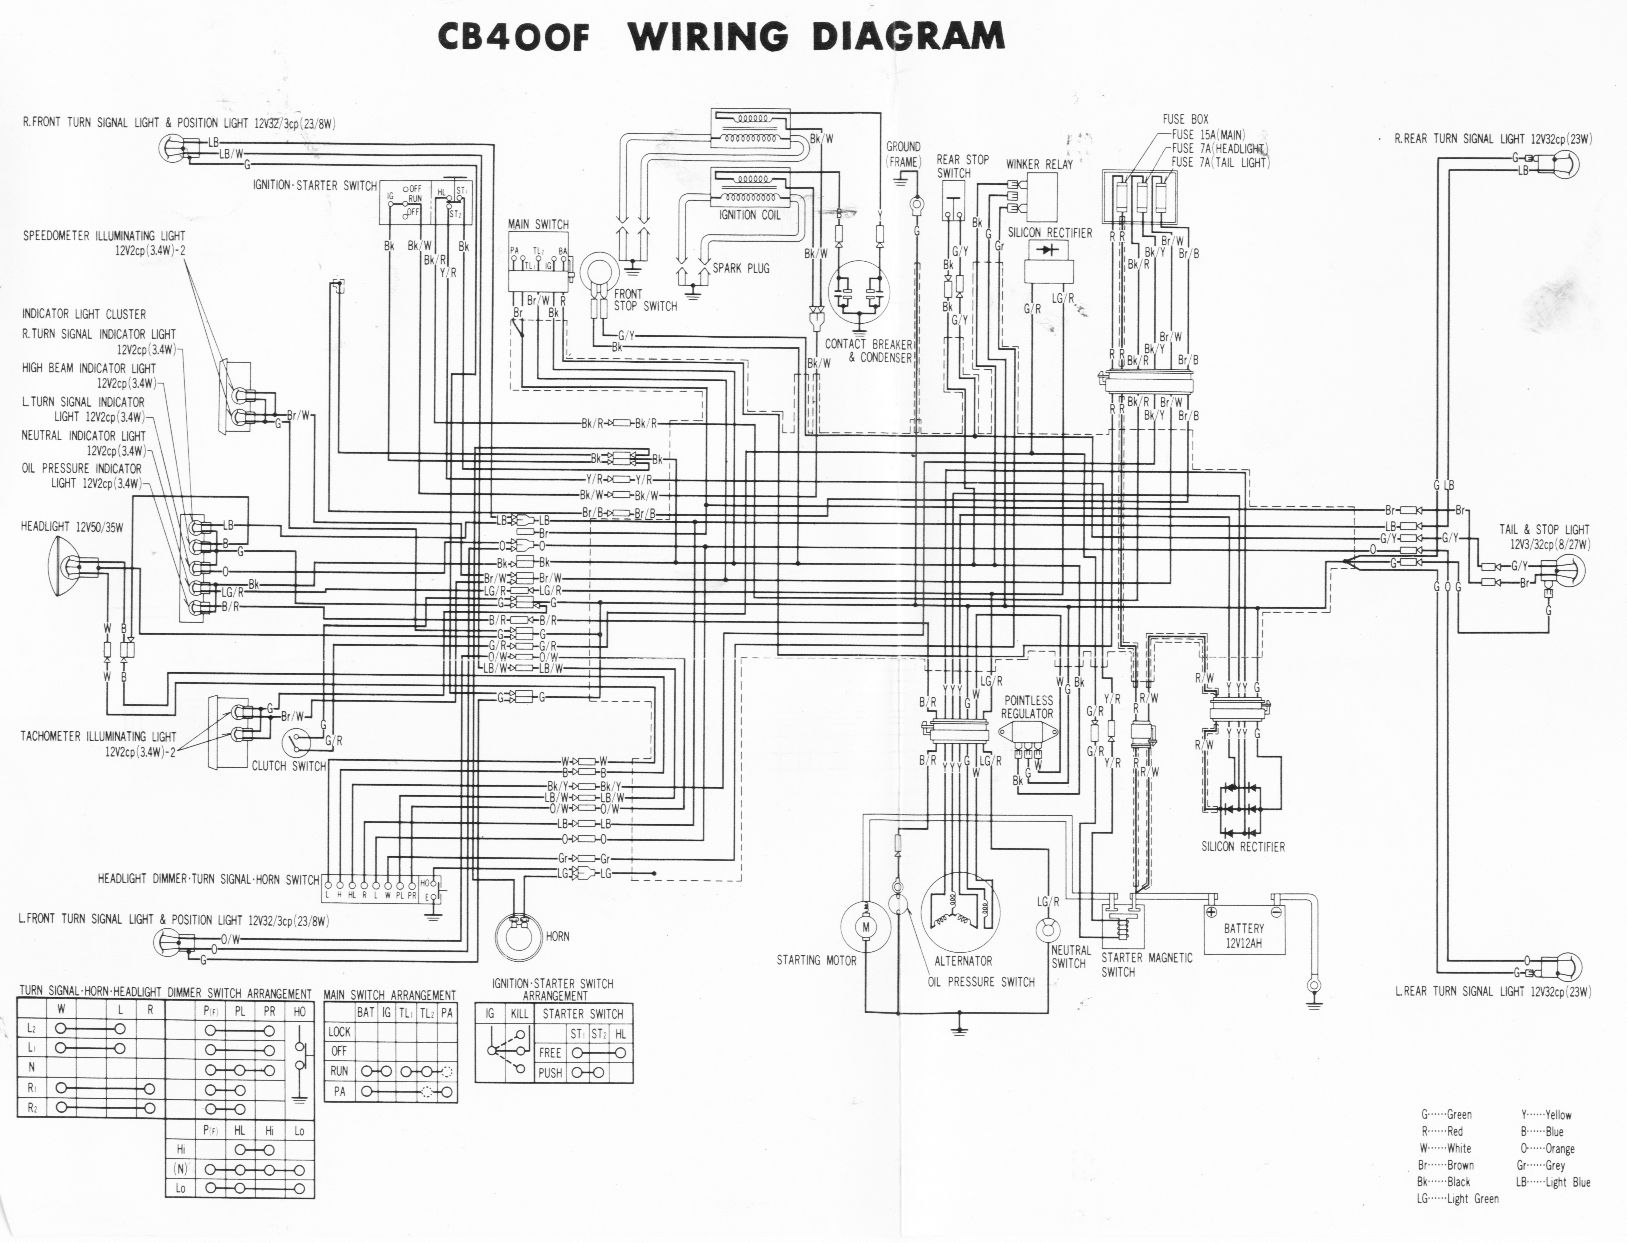 cb400f rh manuals sohc4 net honda cb400 hawk wiring diagram 1979 honda cb 400 wiring diagram